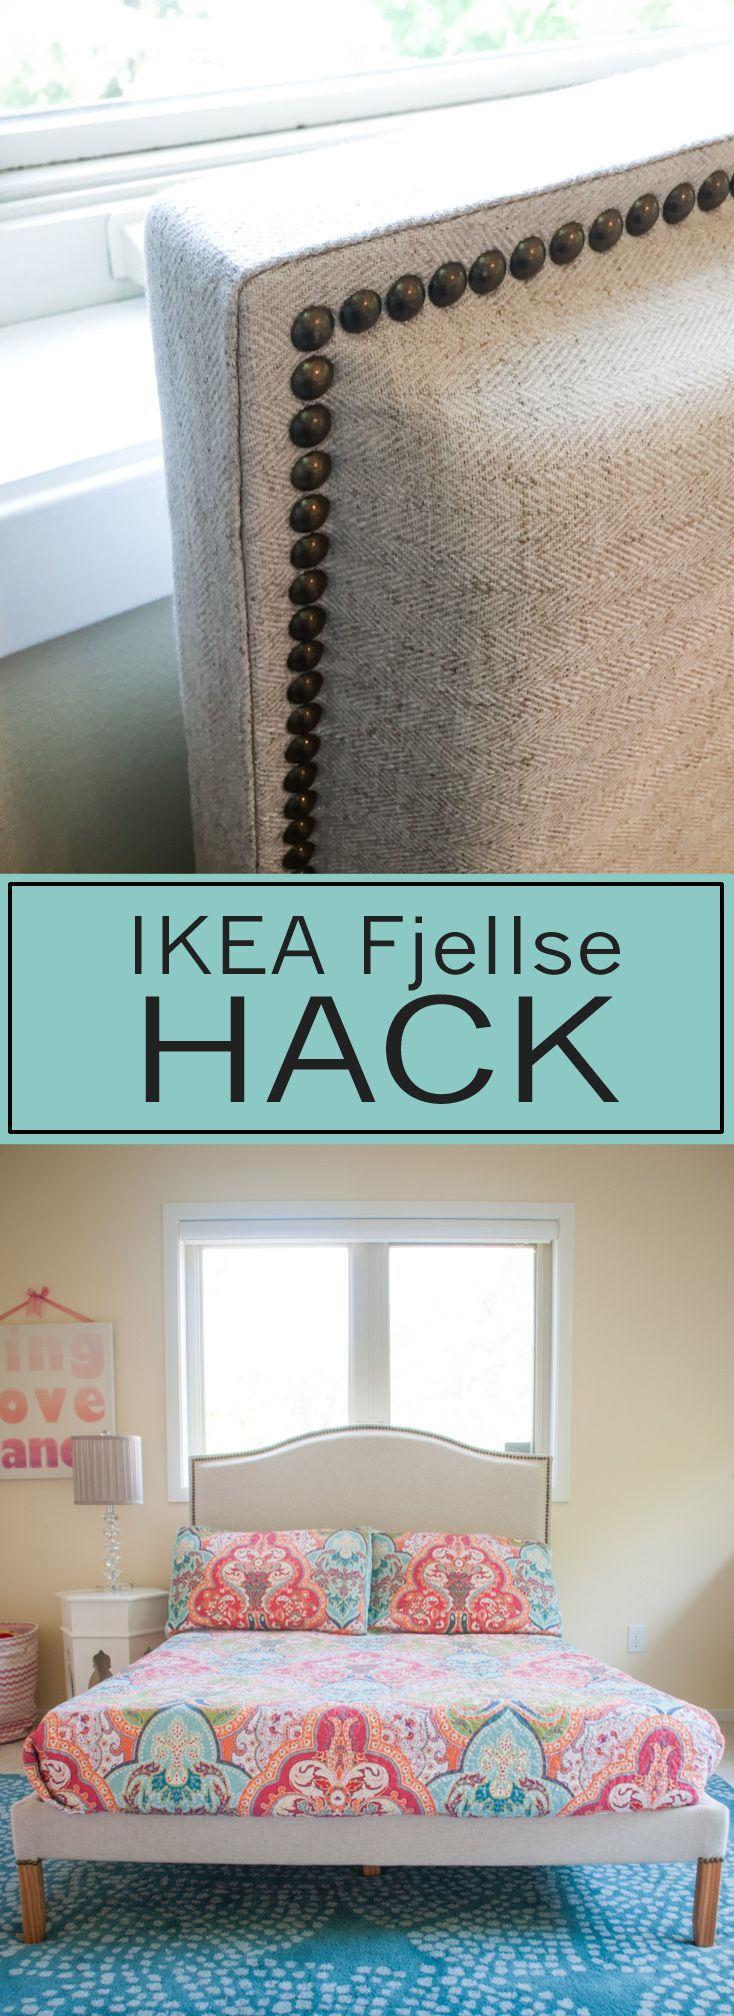 Turn your Ikea Fjellse into a professional looking bed frame!  Part 2 of my Little Girl's Bedroom Makeover series.